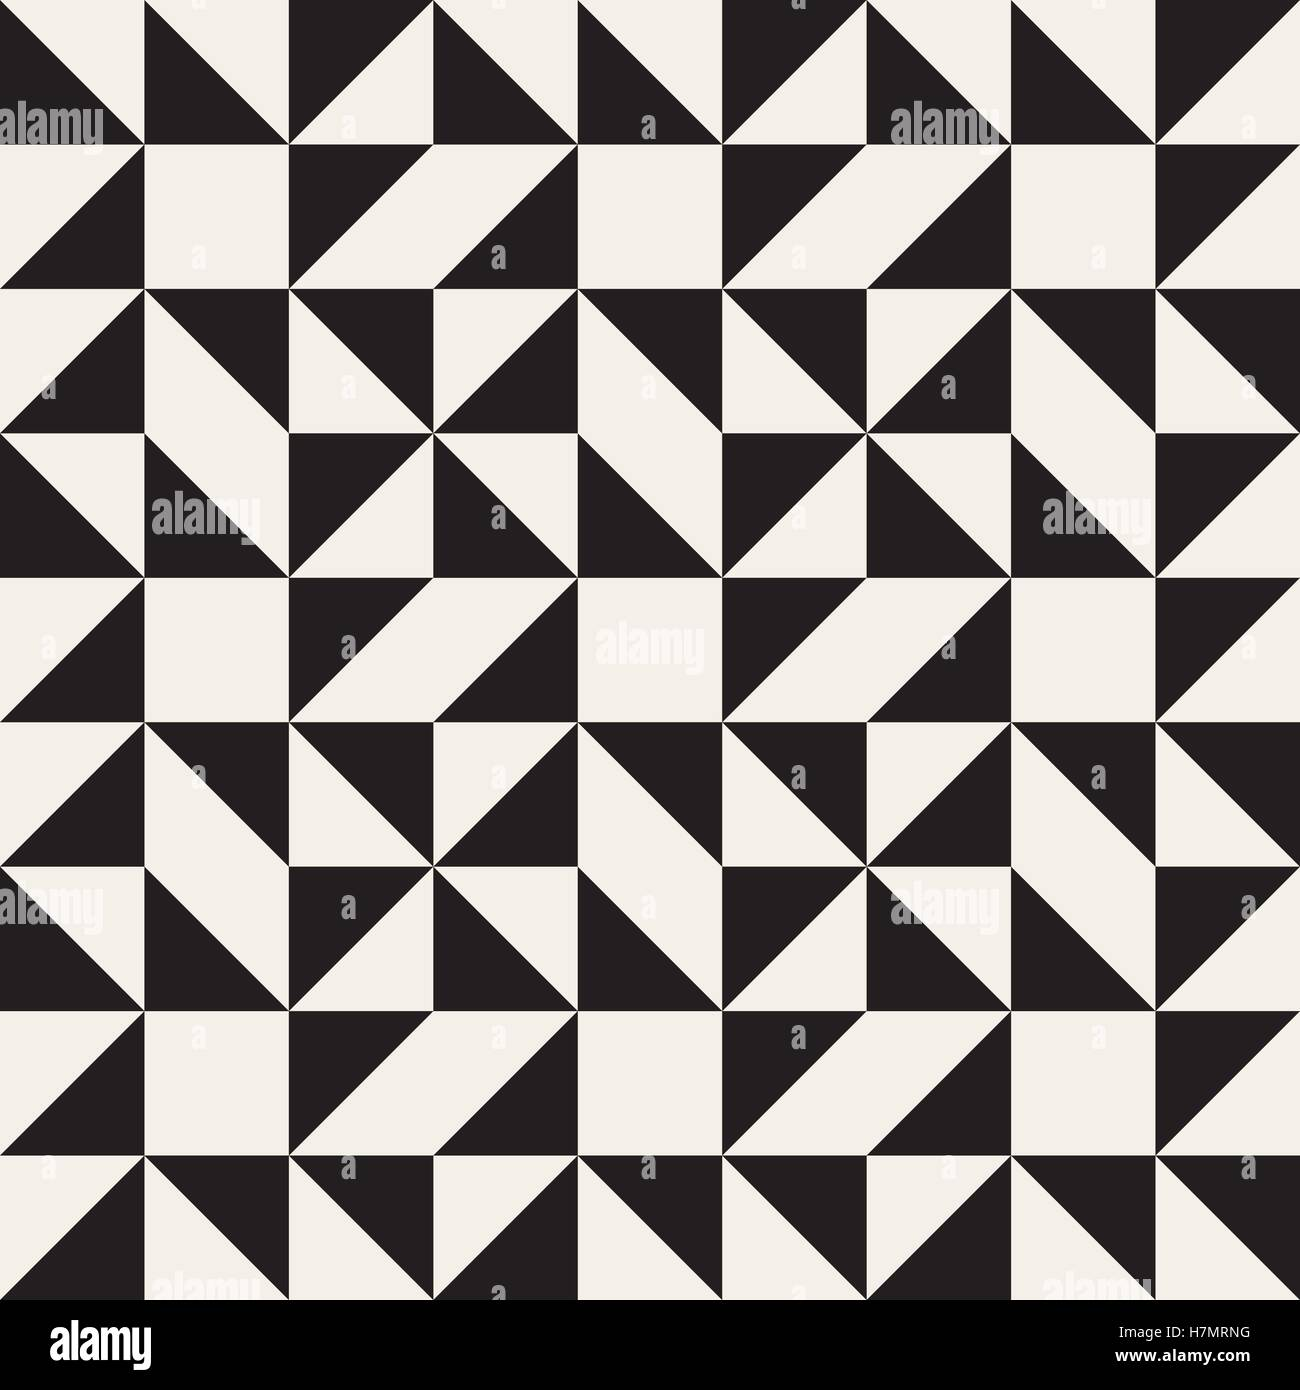 Vector Seamless Black And White Geometric Square Triangle